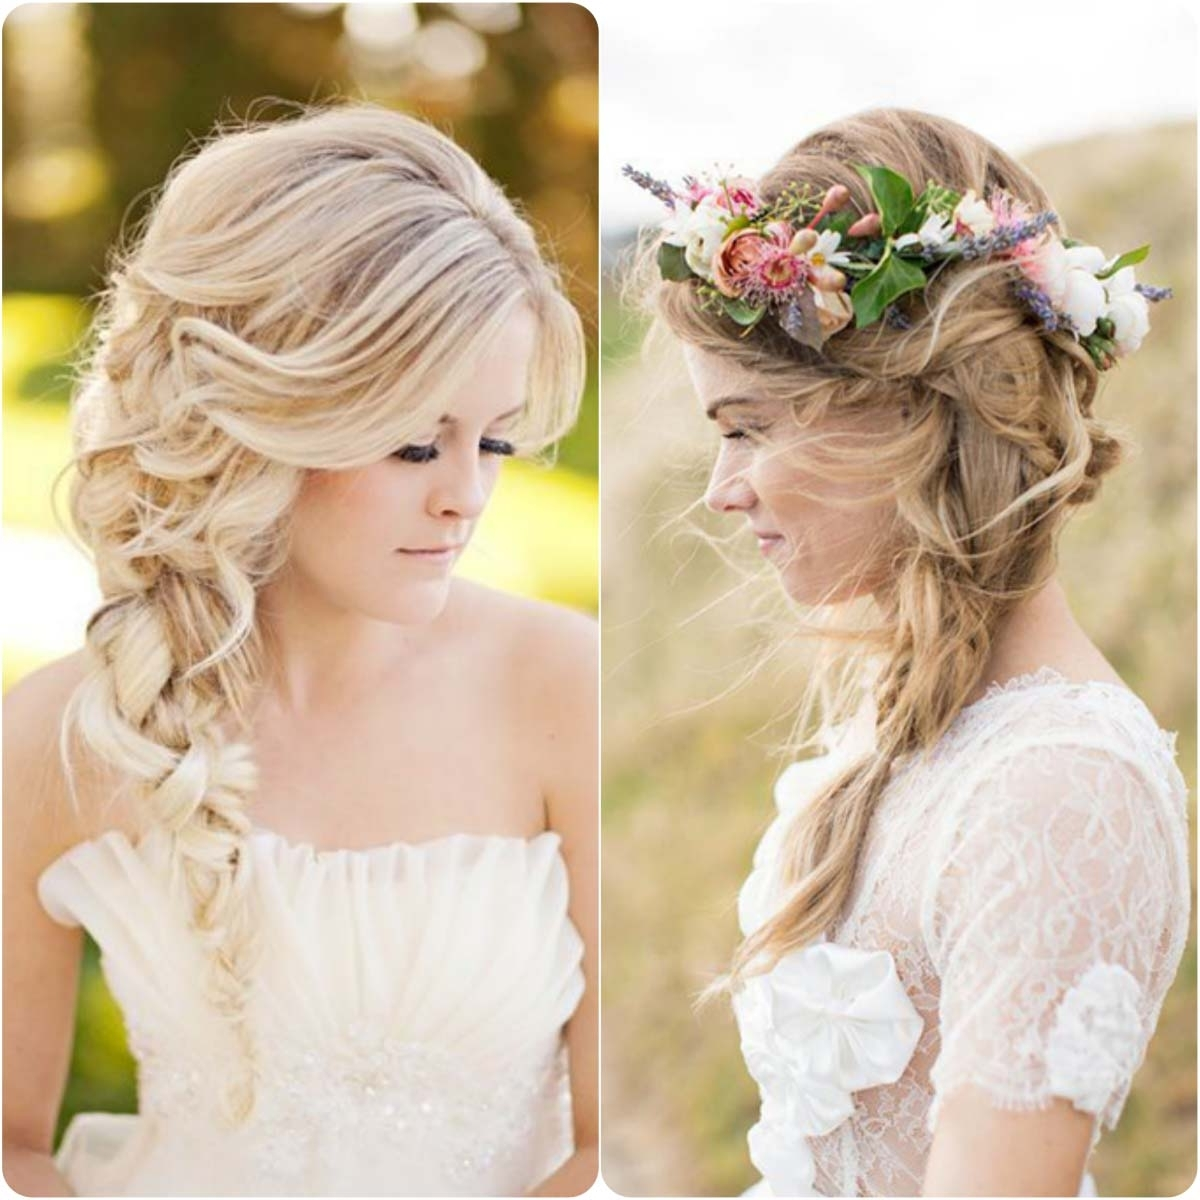 Incredible Braid Hairstyles For Wedding Micro Weddings Updo Side Throughout Well Liked Braided Hairstyles For Bridesmaid (View 10 of 15)